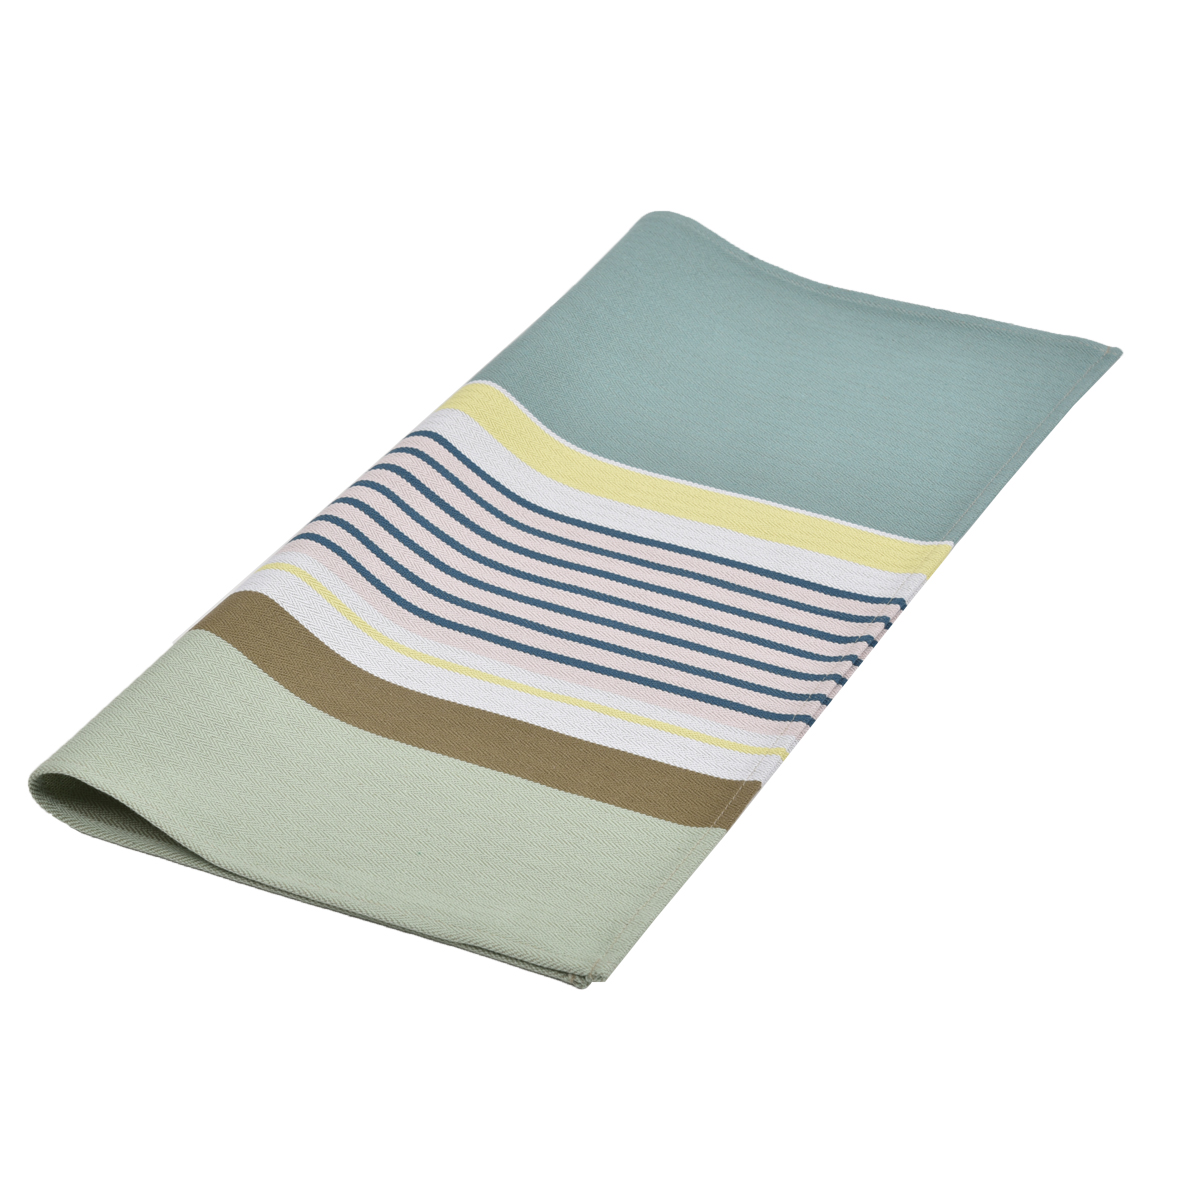 Serviette de table poyartin artiga - Serviette de table tissu ikea ...